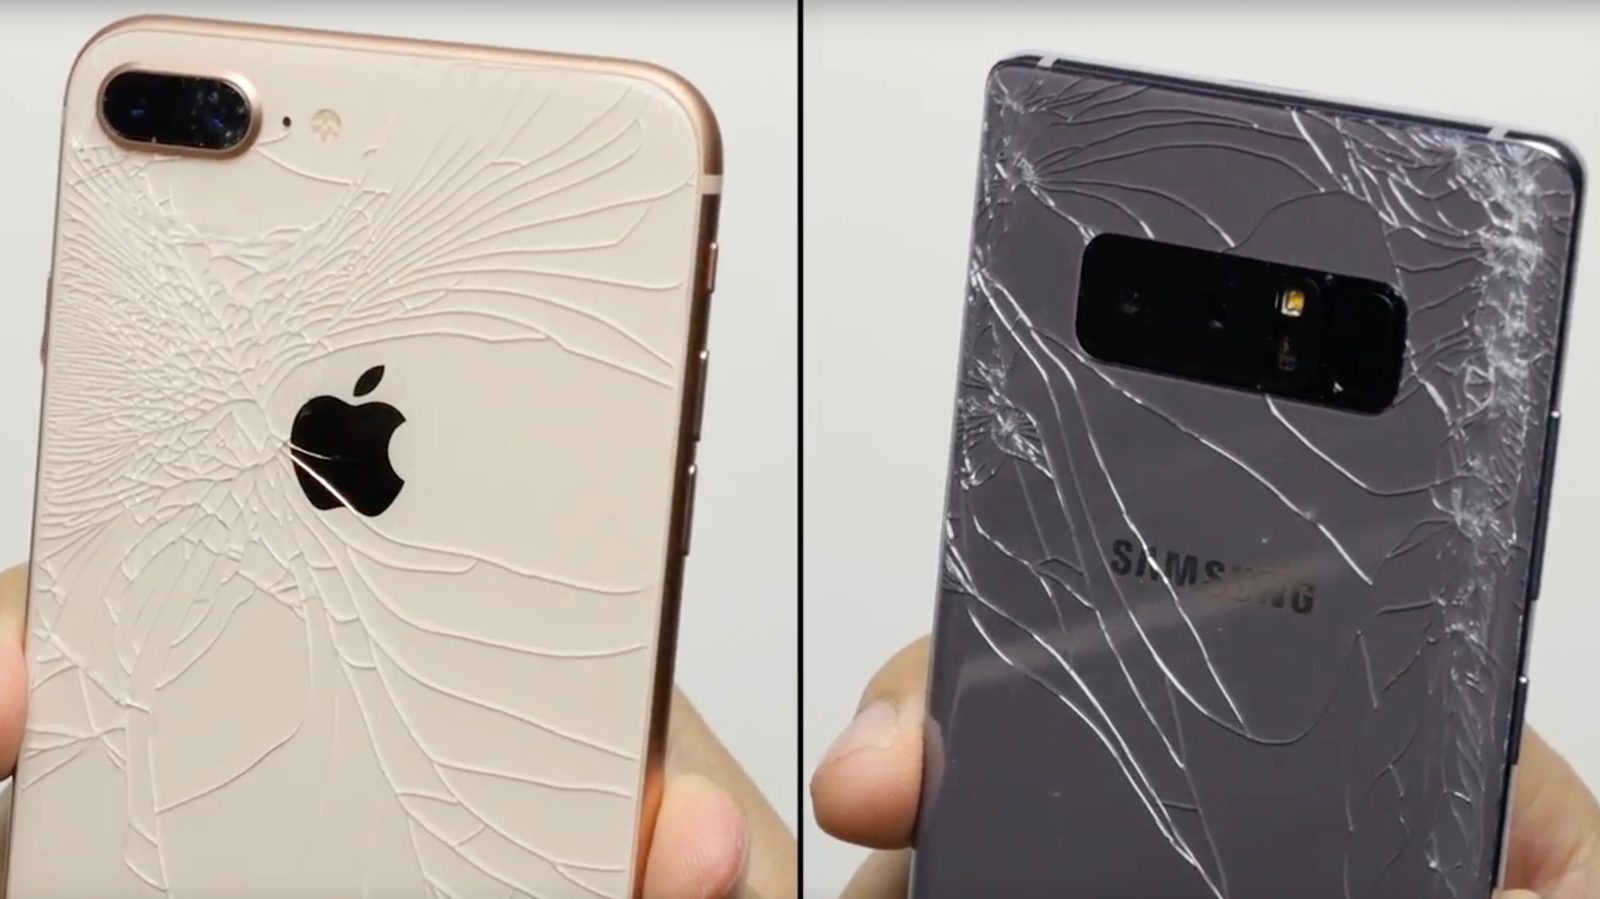 Here's how well the iPhone 8's new all-glass design holds up